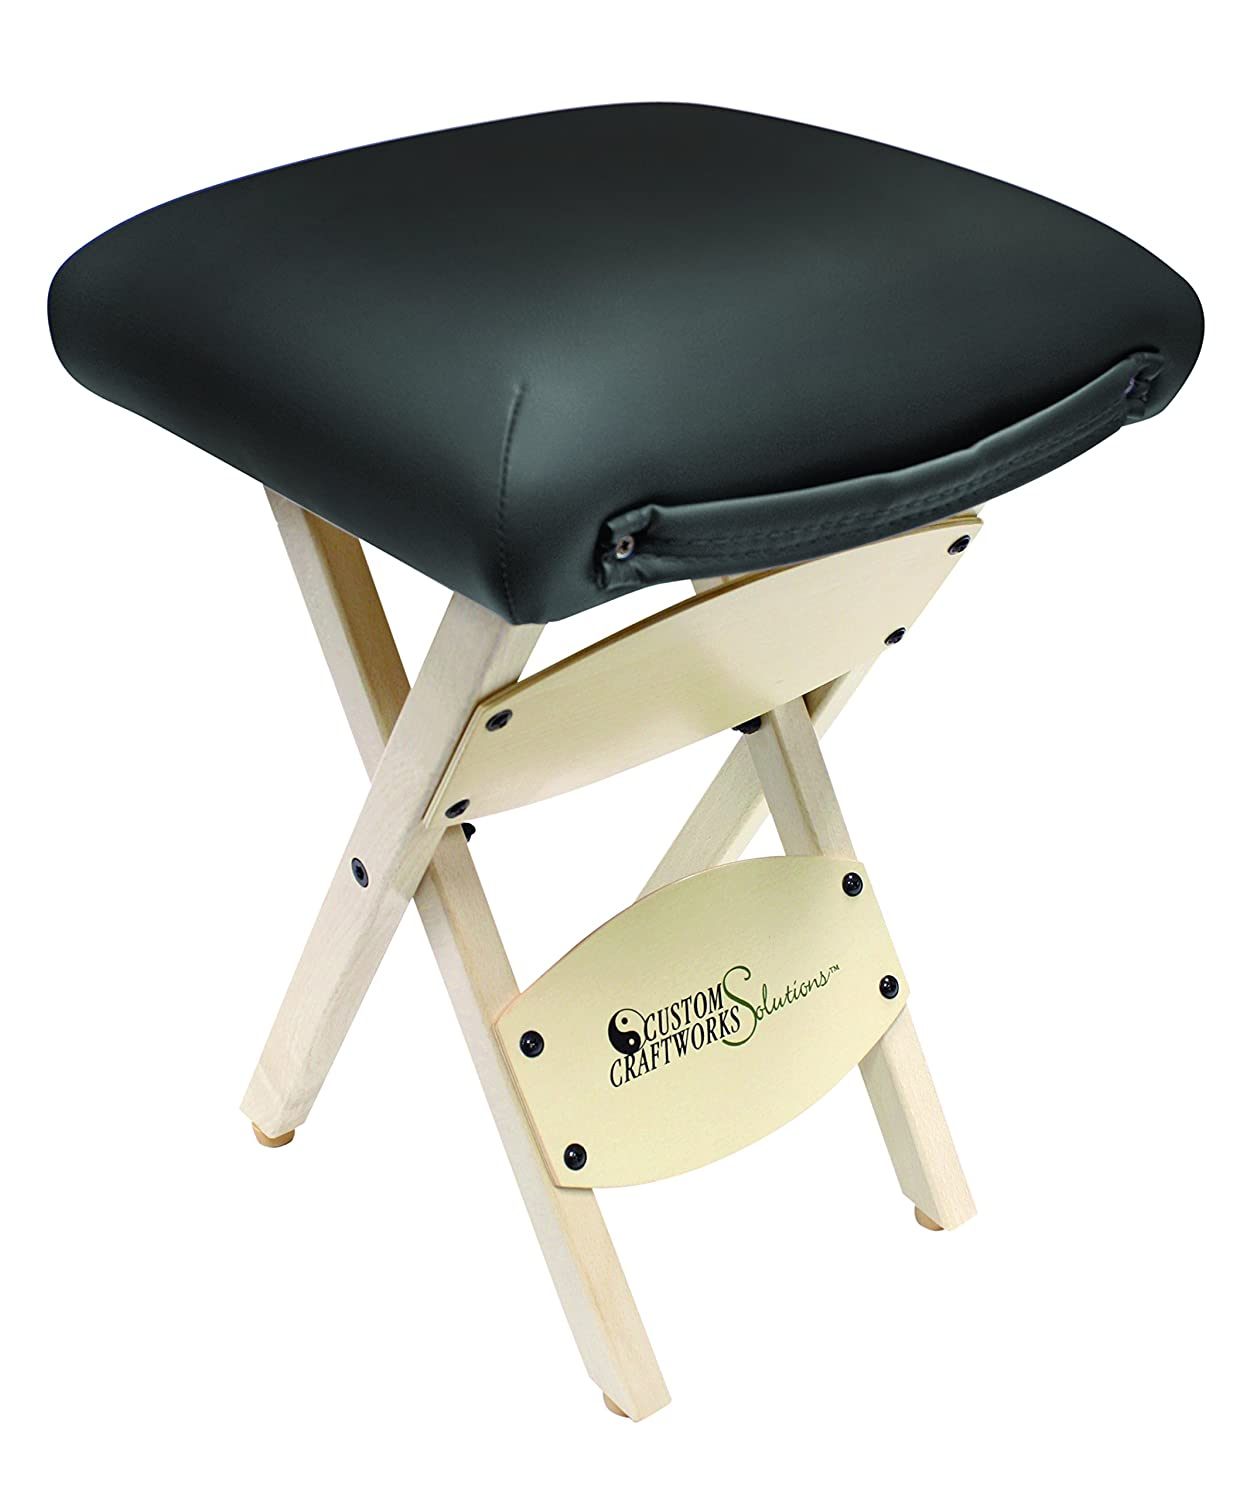 Custom Craftworks Wooden Folding Stool with PU Cushions Black I9311 - PU - Black